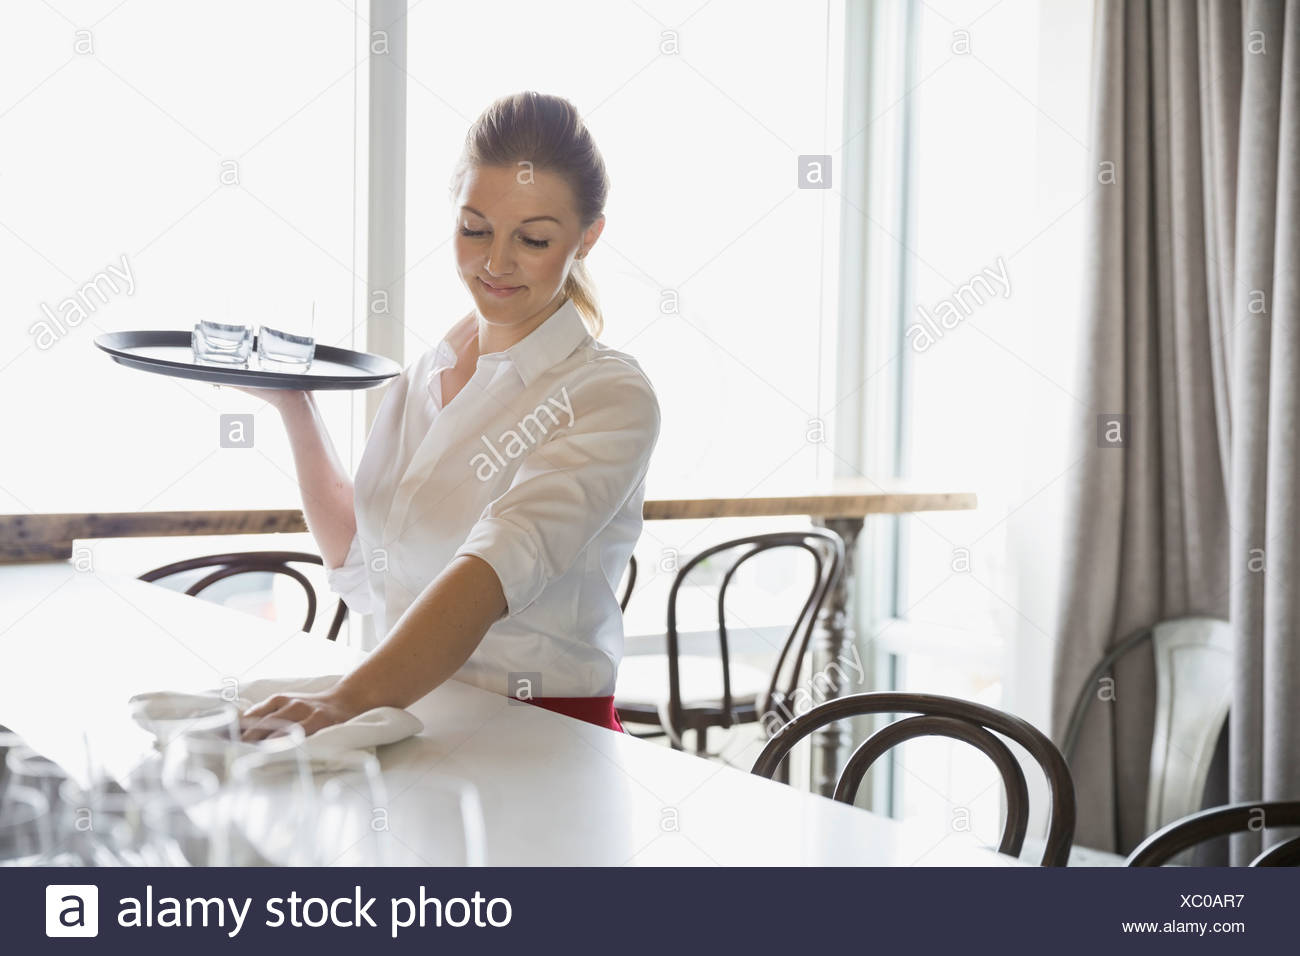 Waitress wiping counter in bistro - Stock Image